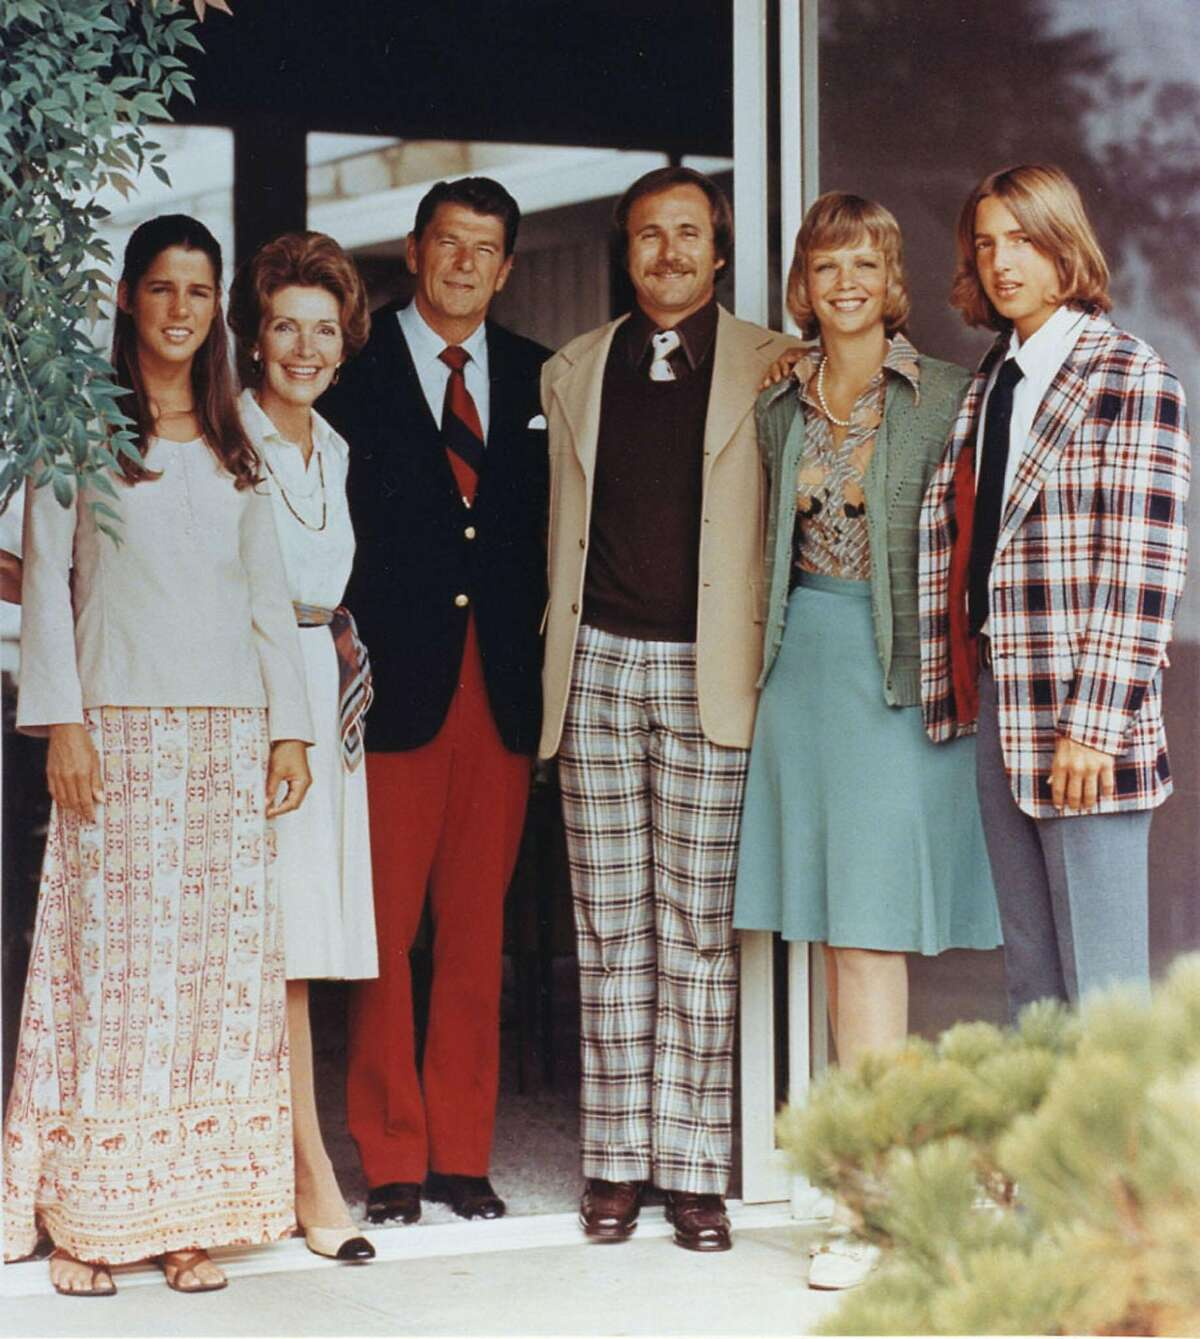 United States president Ronald Reagan and wife Nancy and the Reagan children are shown in this 1976 photograph outside Reagan's Pacific Palisades house. Shown (L-R) are Patti, Nancy Reagan, Ronald Reagan, Michael Reagan, Maureen Reagan and Ron Reagan.